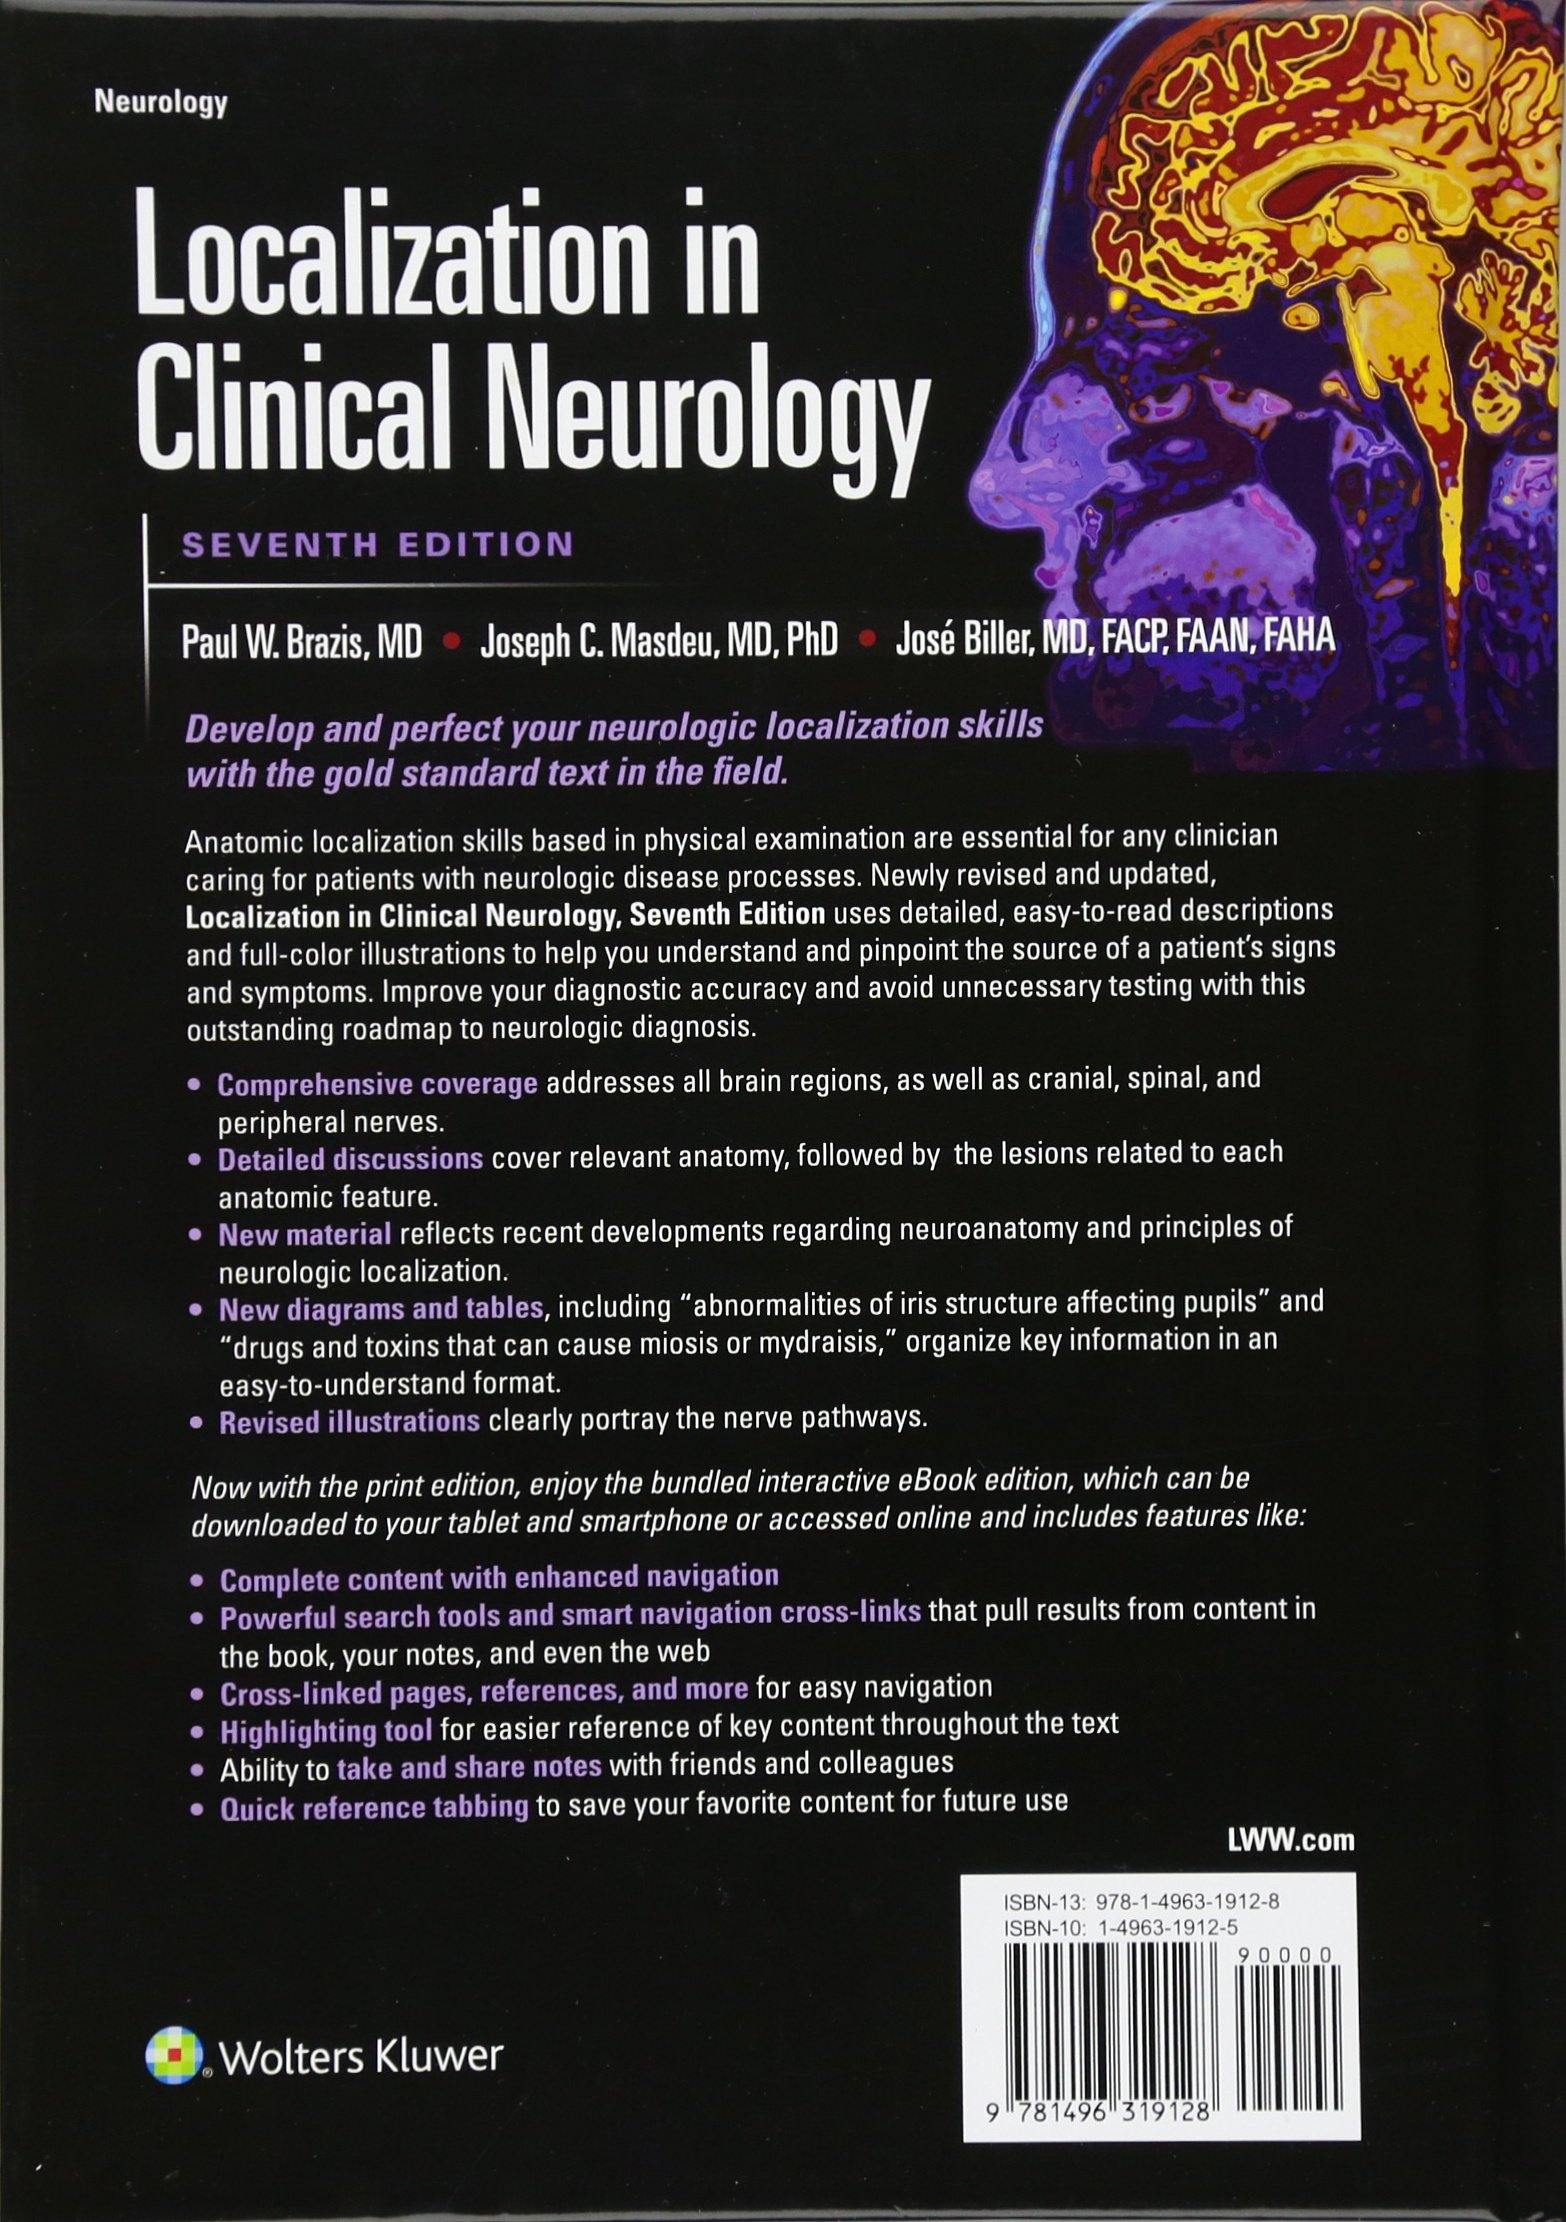 brazis localization in clinical neurology